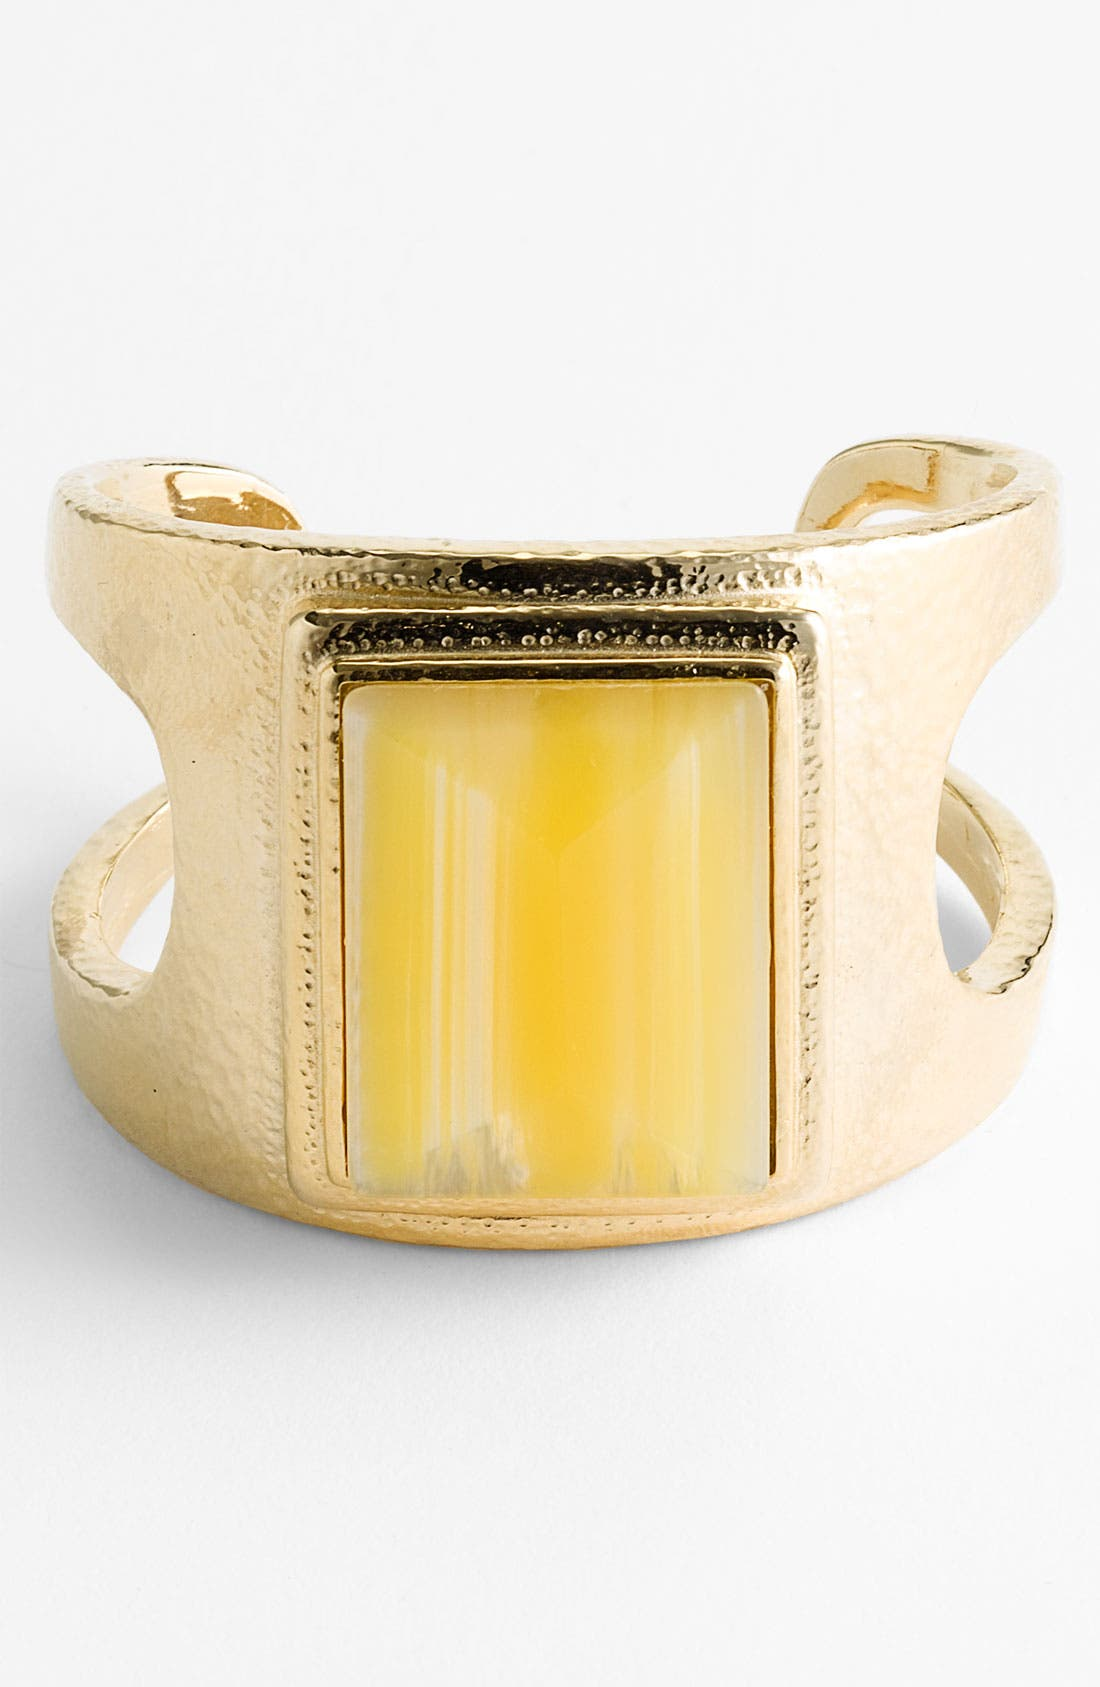 Alternate Image 1 Selected - Nordstrom 'Tribal Deluxe' Cuff